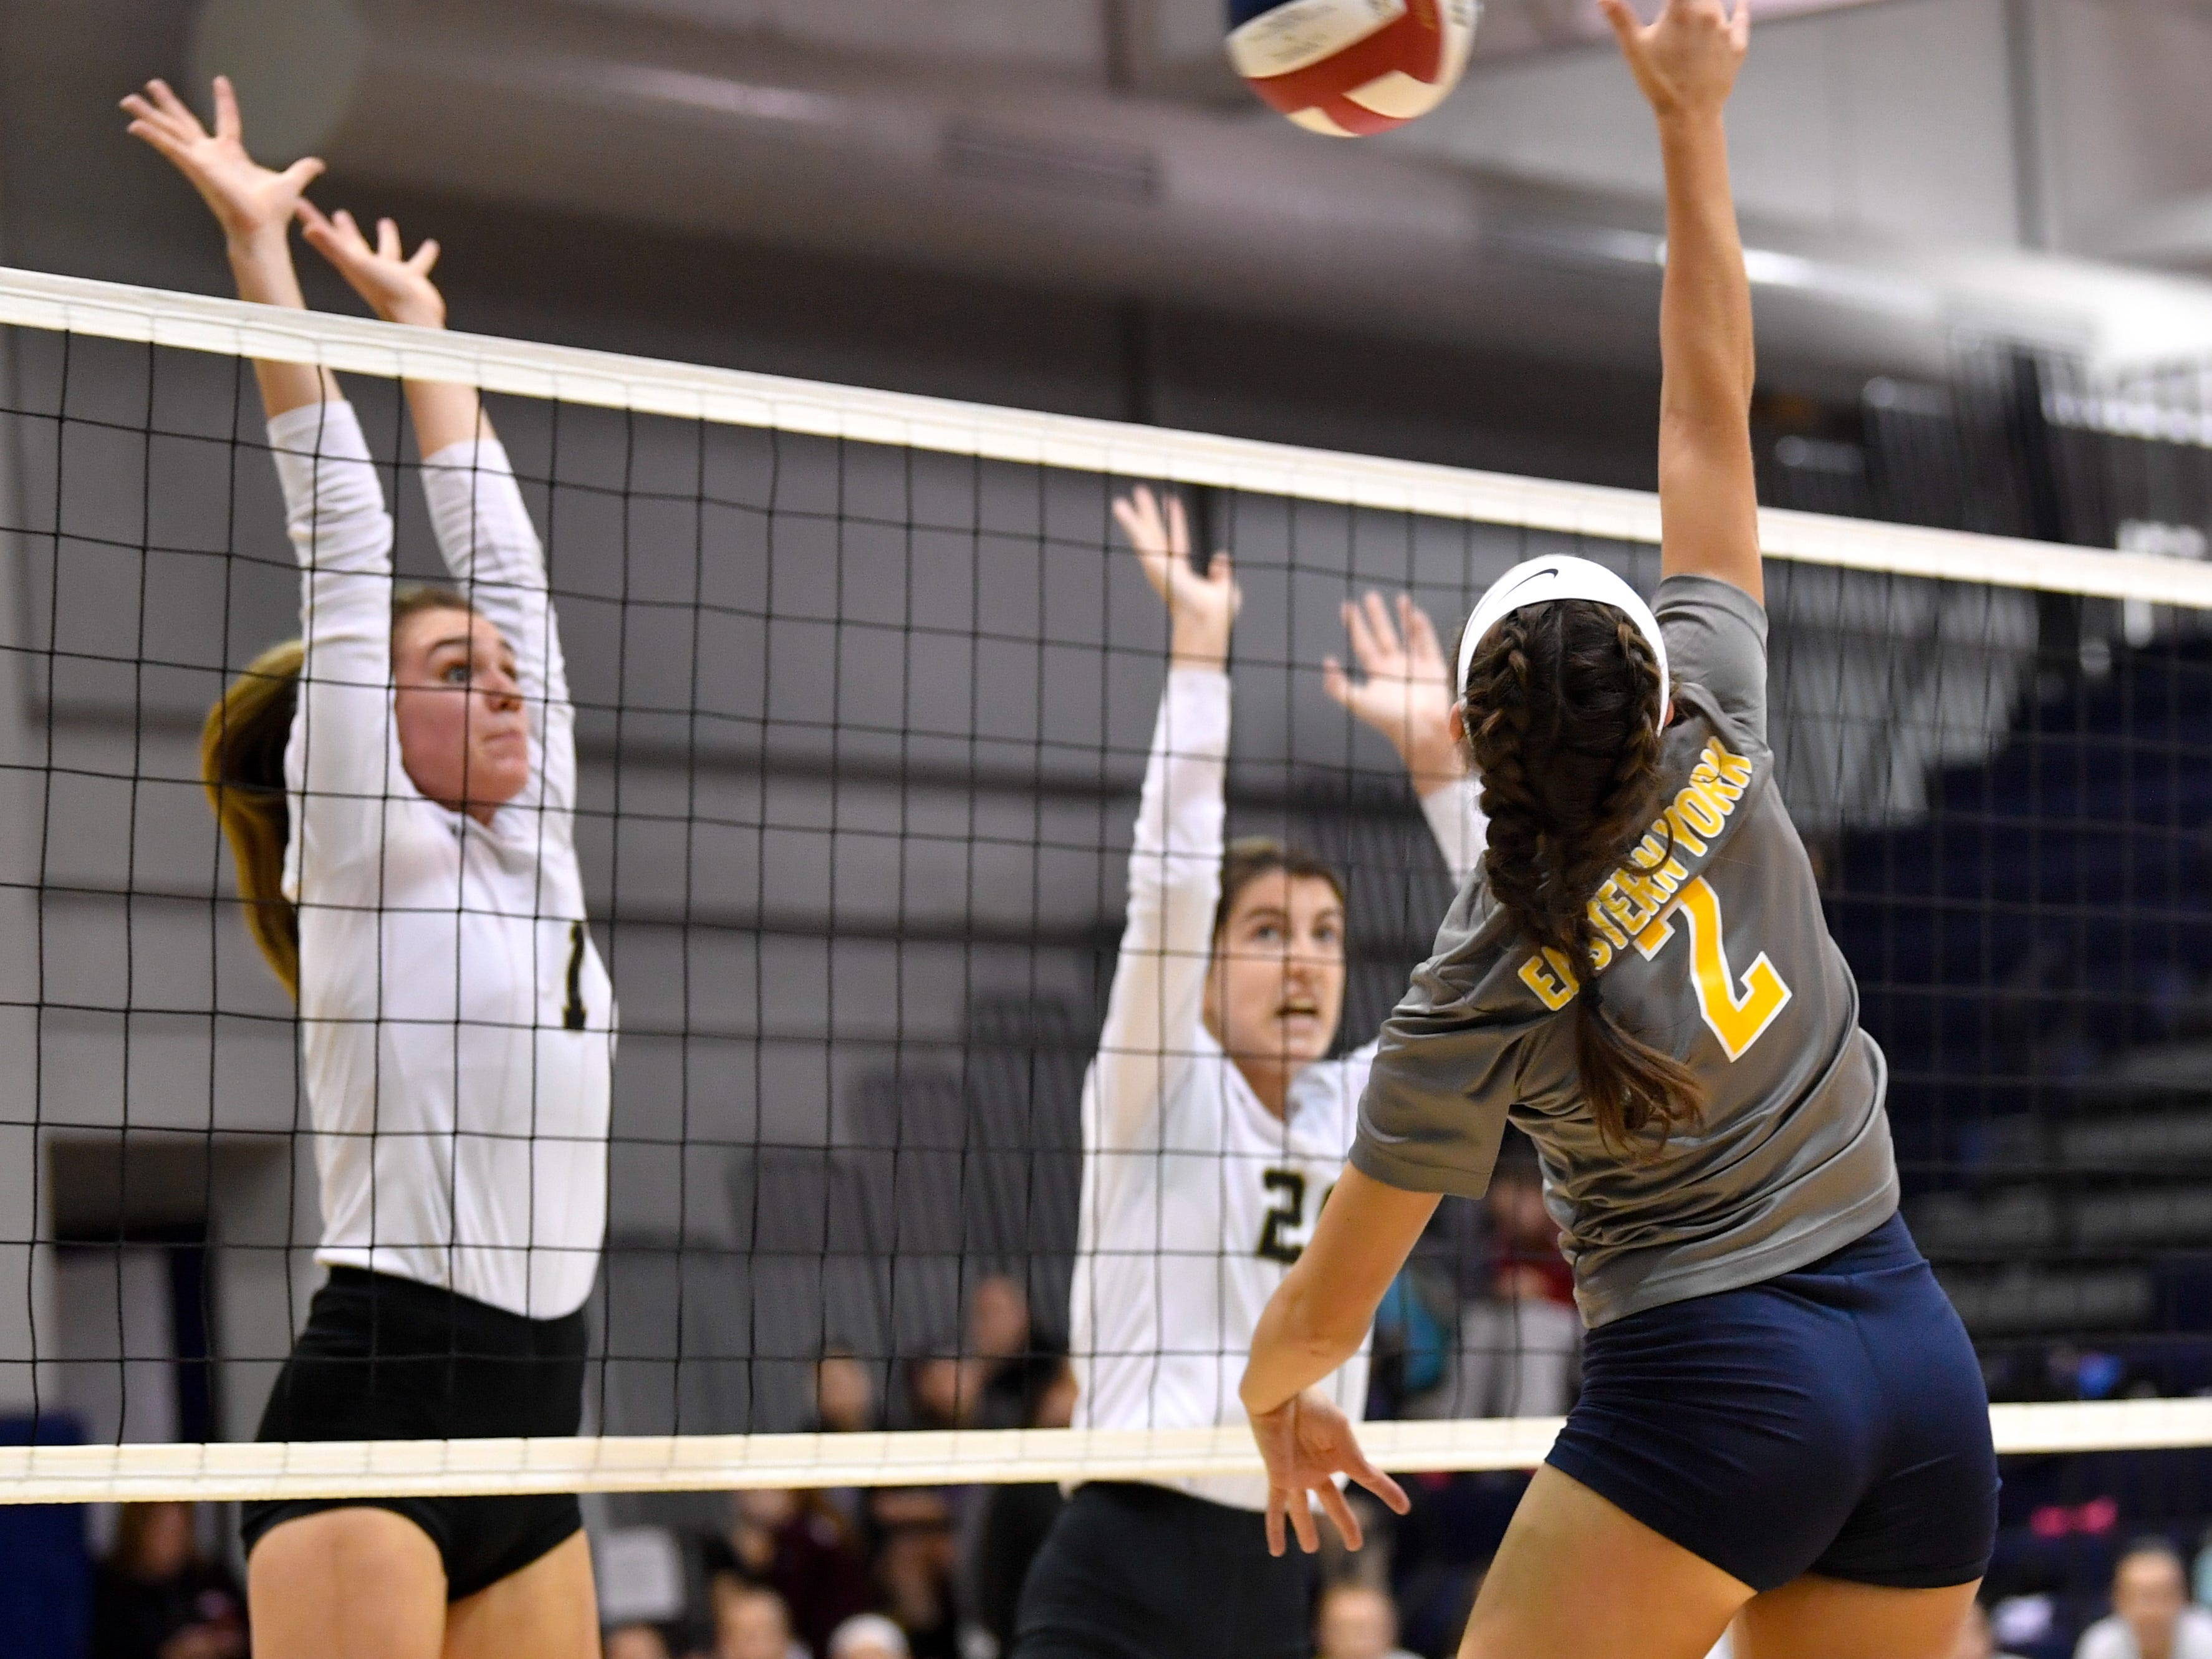 Morgan Dobbeck (2) attempts to spike the ball past Delone Catholic during the YAIAA league volleyball tournament semifinals between Eastern York and Delone Catholic, Tuesday, October 23, 2018. The Squirettes defeated the Golden Knights 3-2.